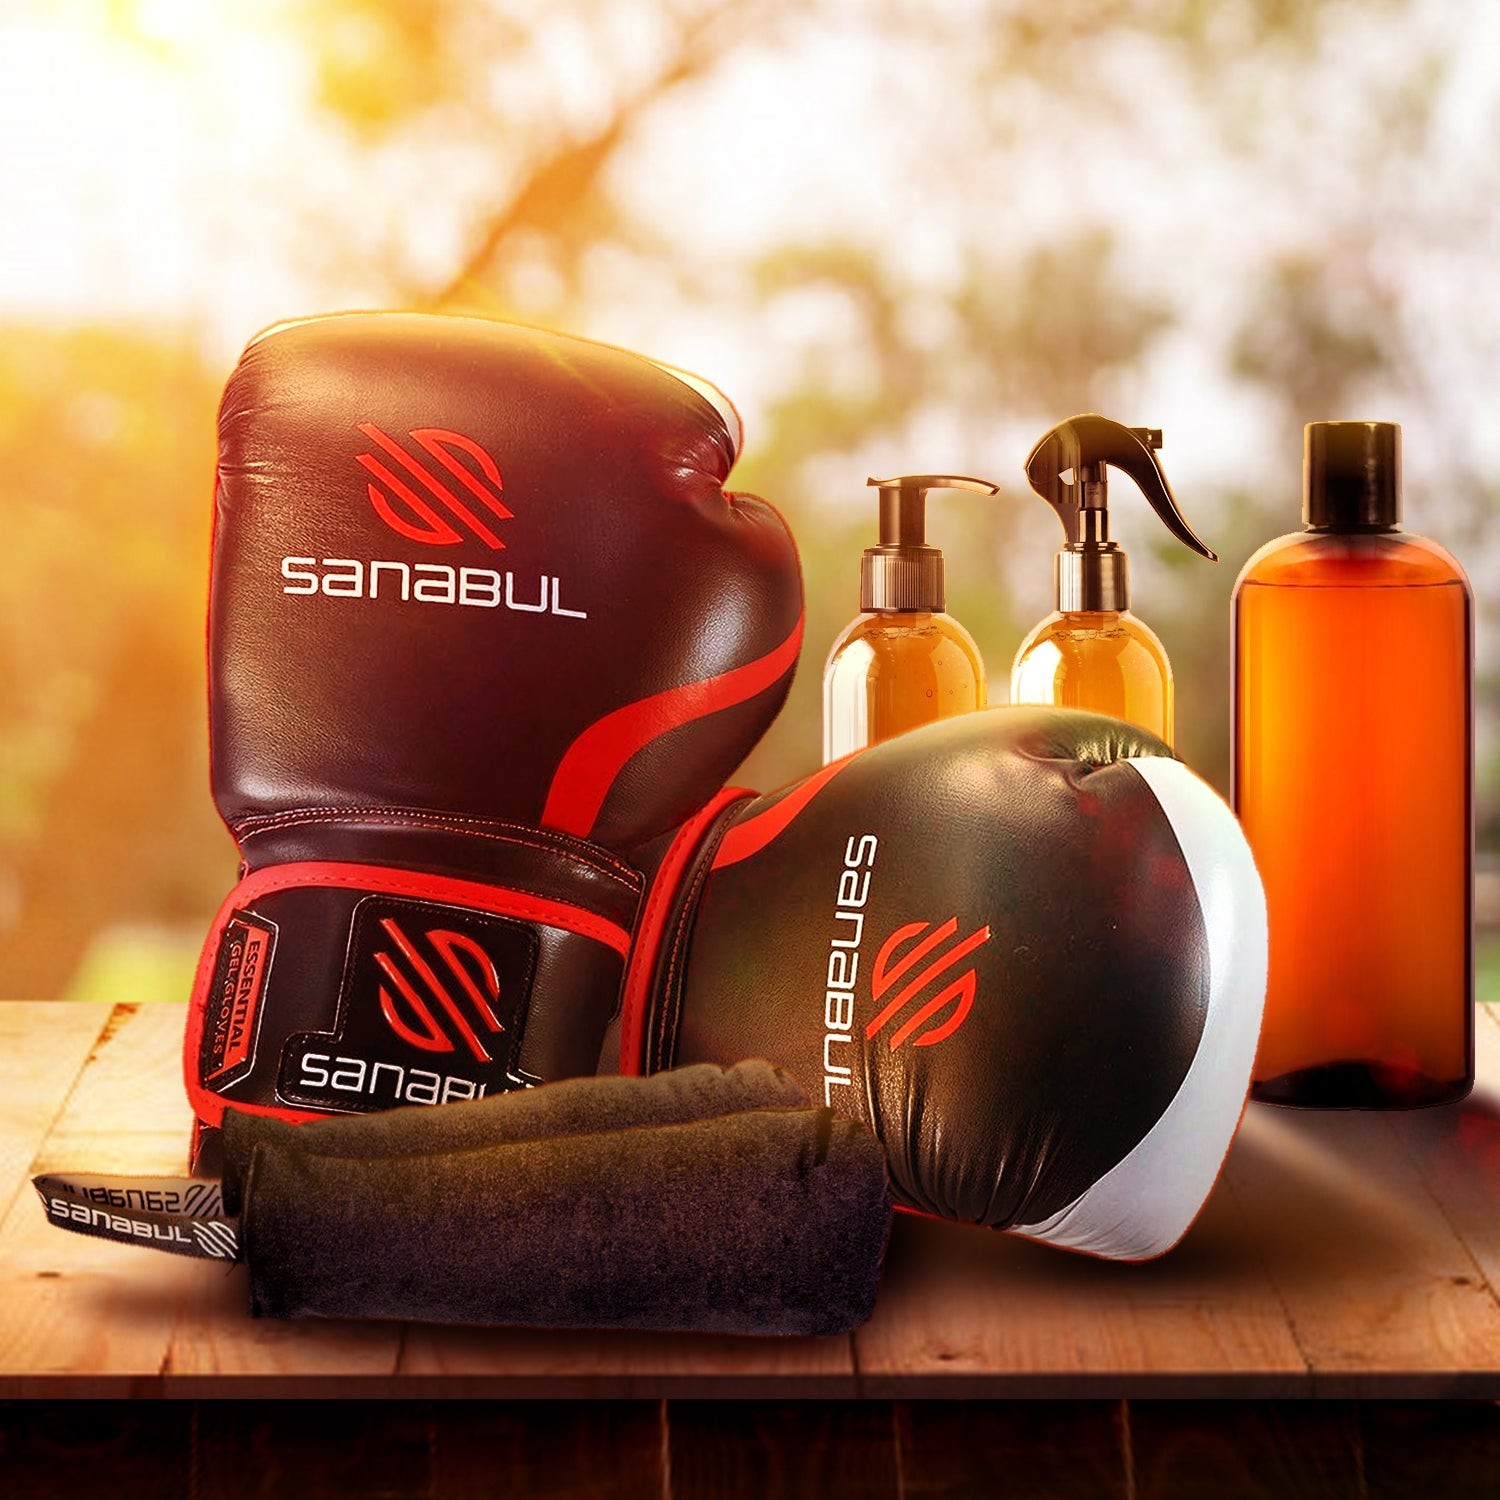 Take Care of Your Boxing Gear With These 4 Easy Steps